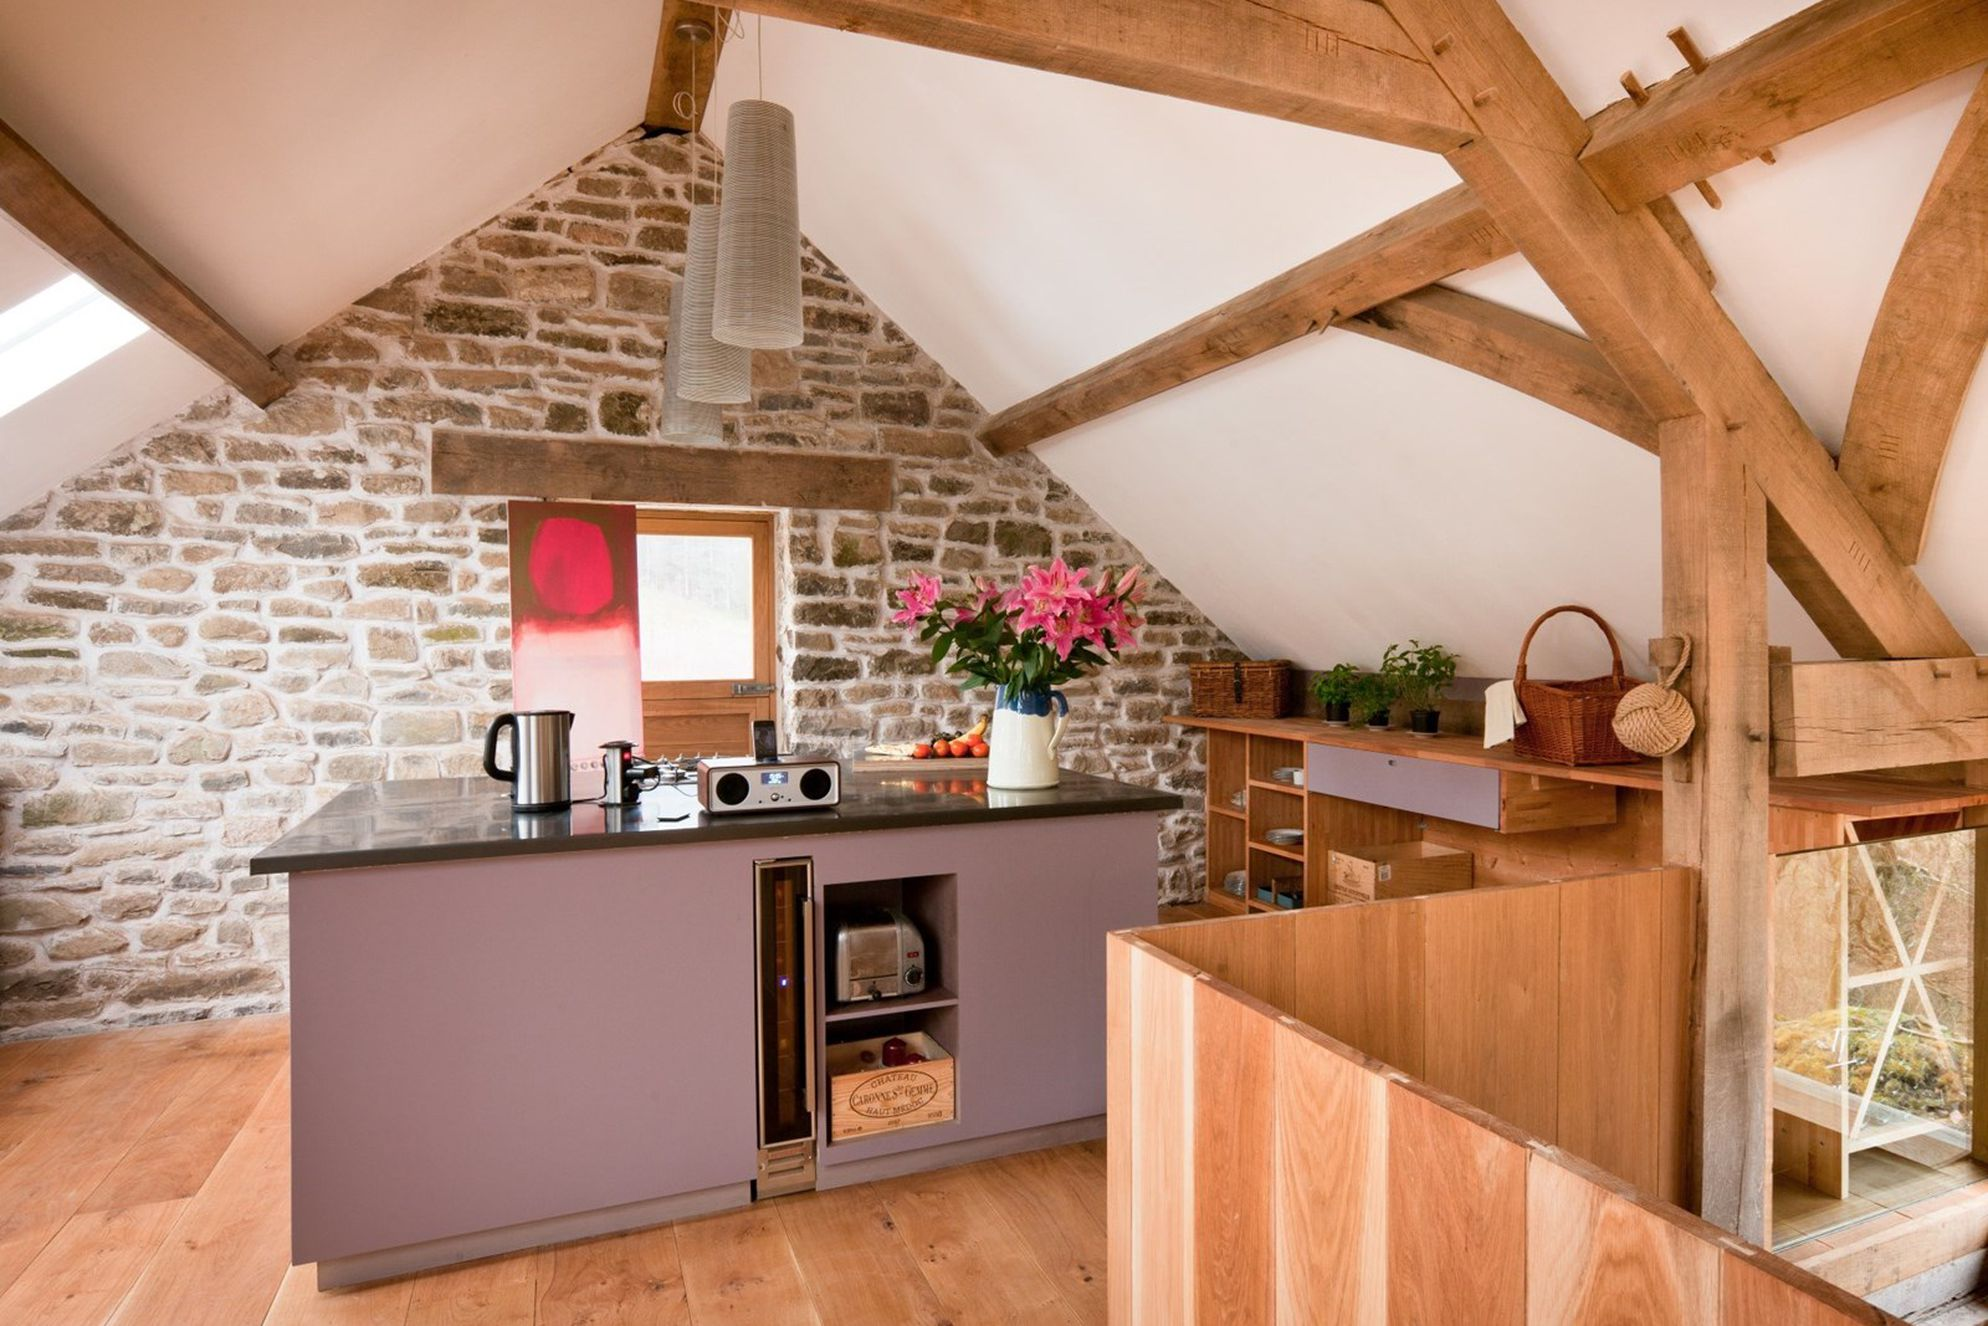 Spacious kitchen area at Red Kite Barn in Powys, Wales with nifty storage, wine cooler, coffee machine and music player